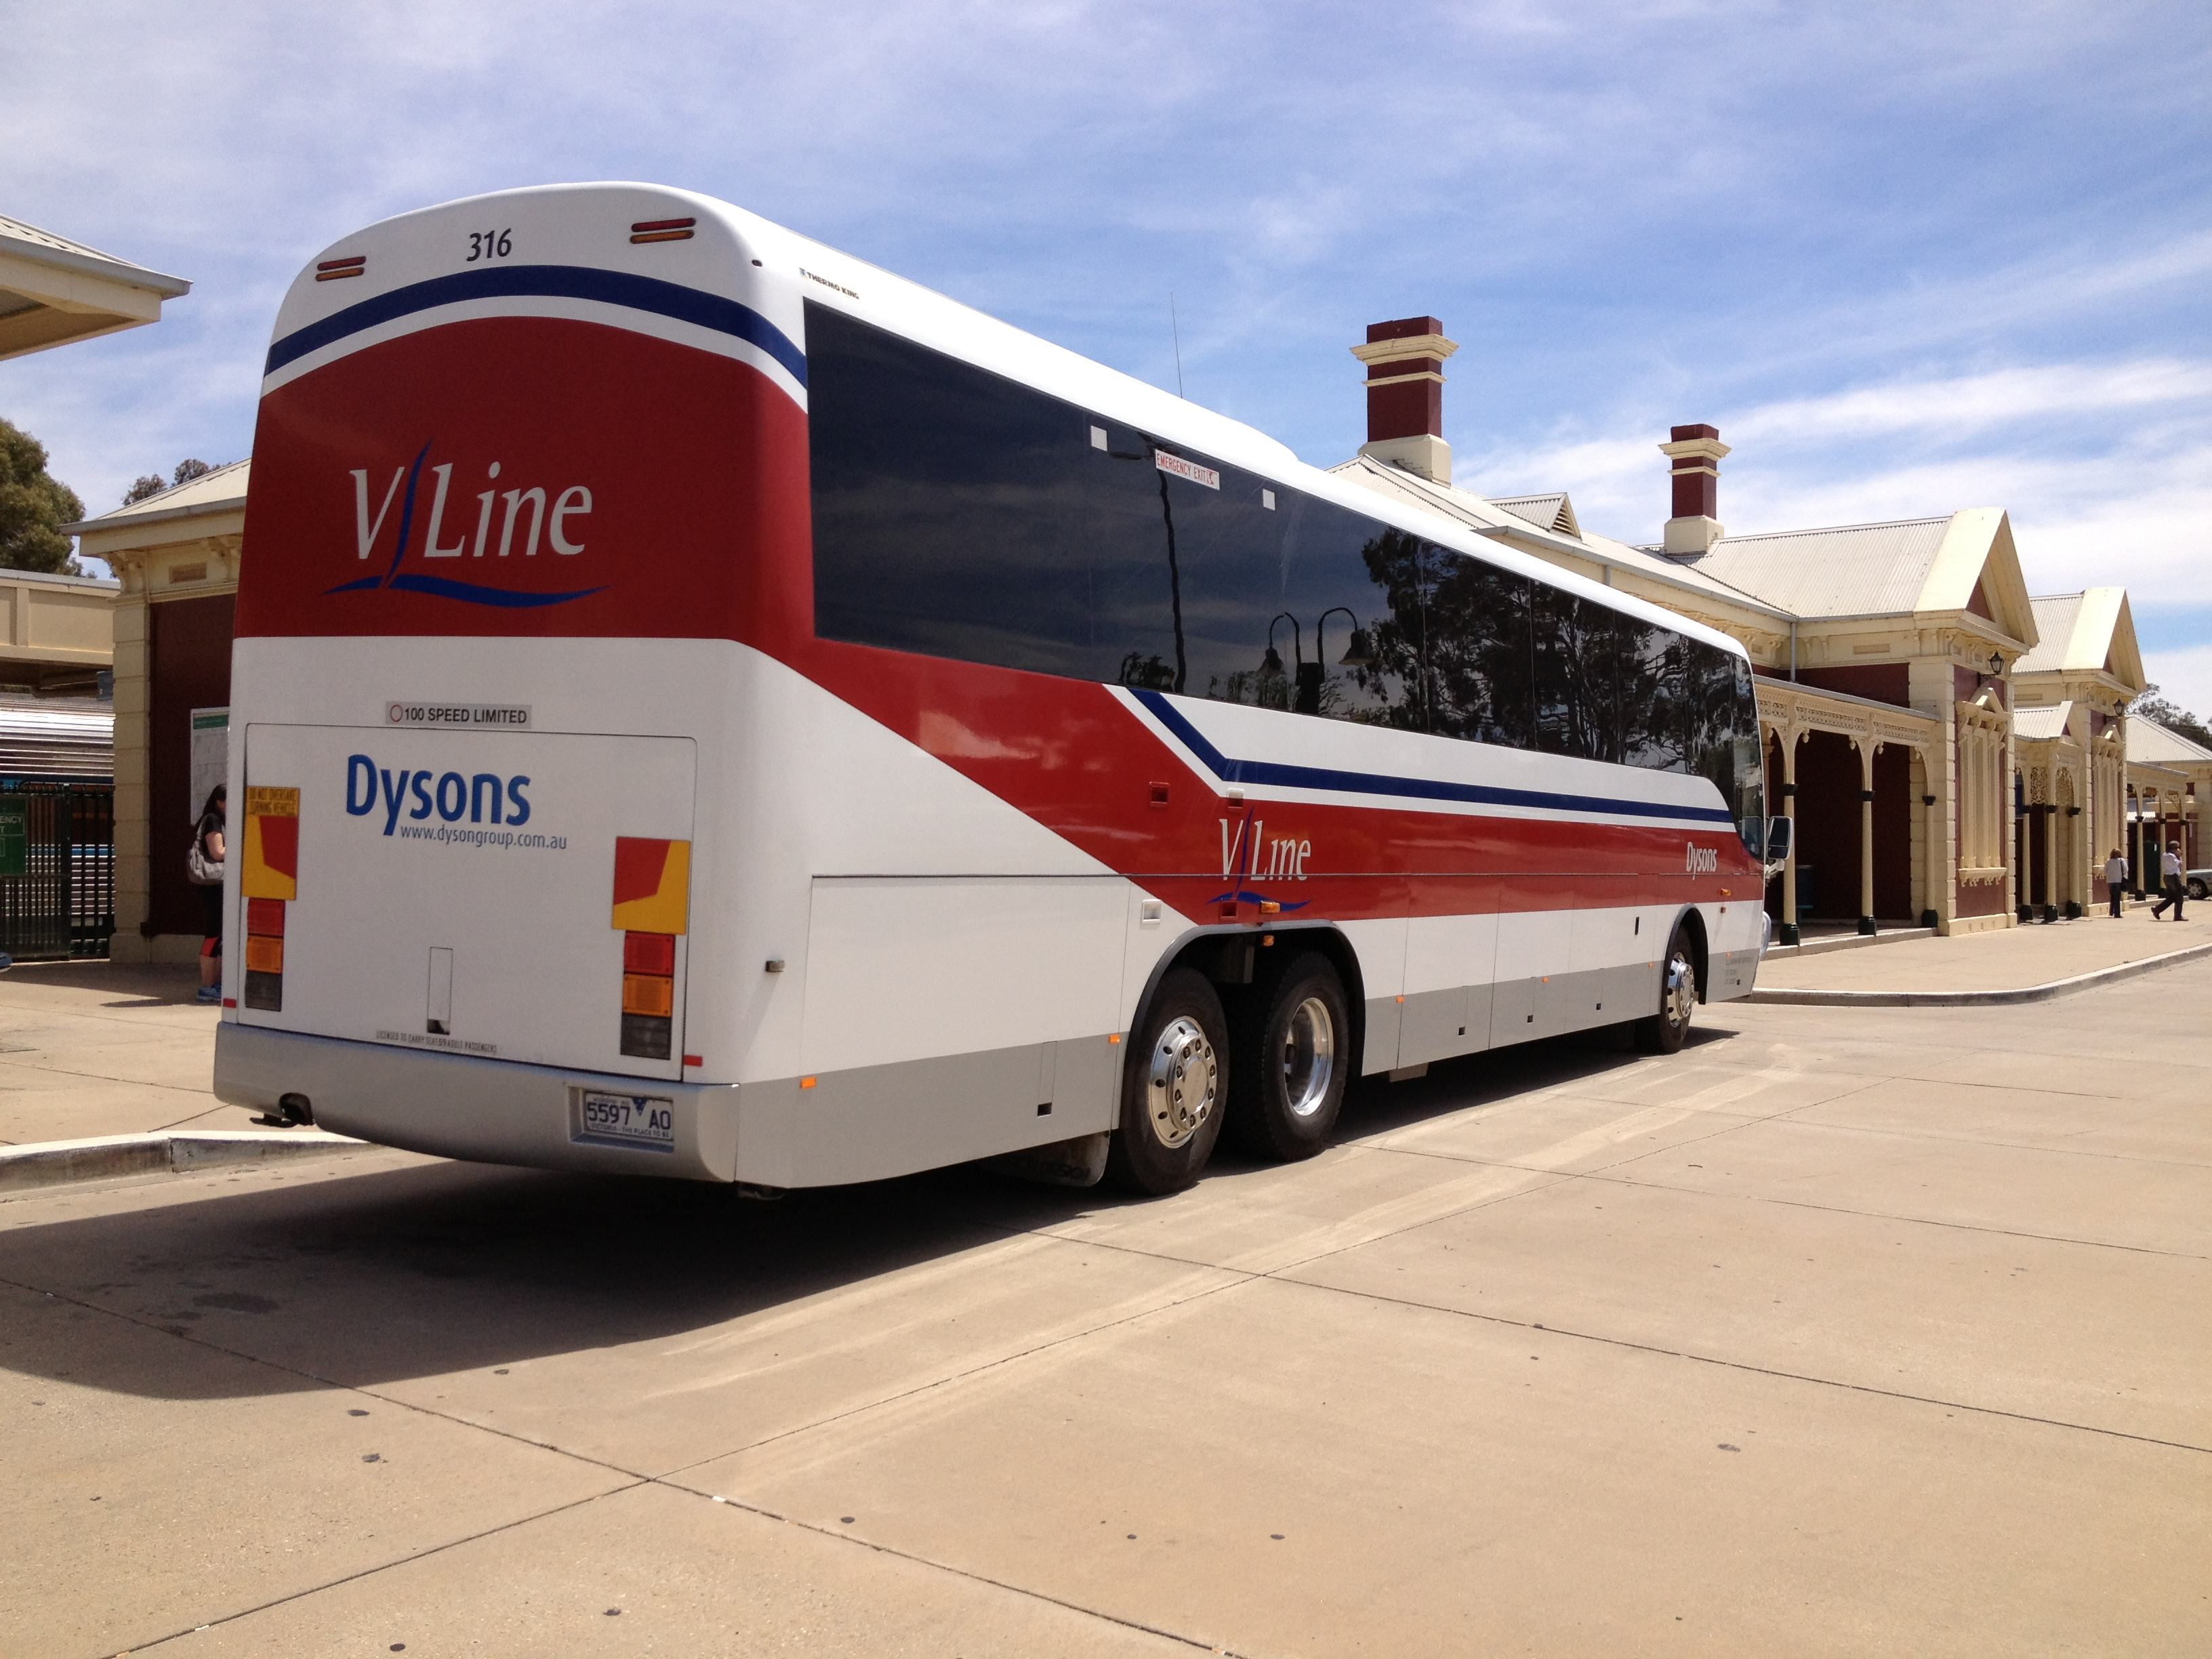 File:Dyson's Bus Services (5597 AO), in VLine livery, Coach Design